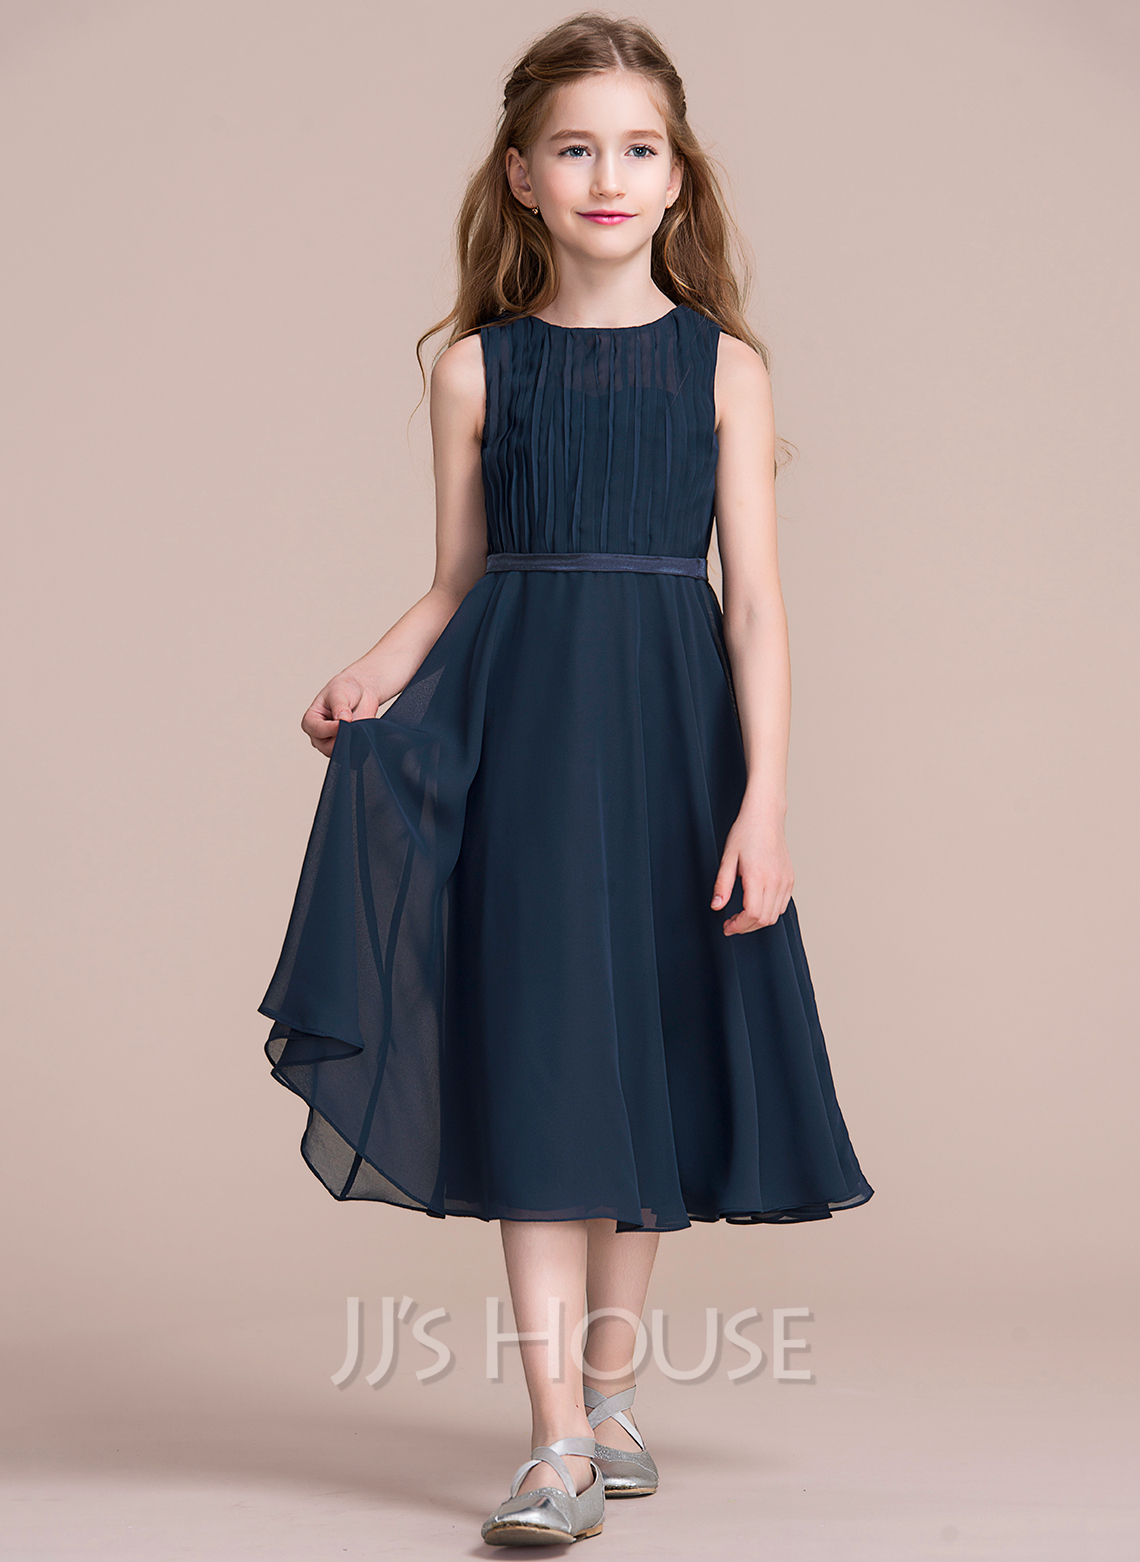 f4790c2de13f A-Line/Princess Scoop Neck Tea-Length Chiffon Junior Bridesmaid Dress With  Ruffle. Loading zoom